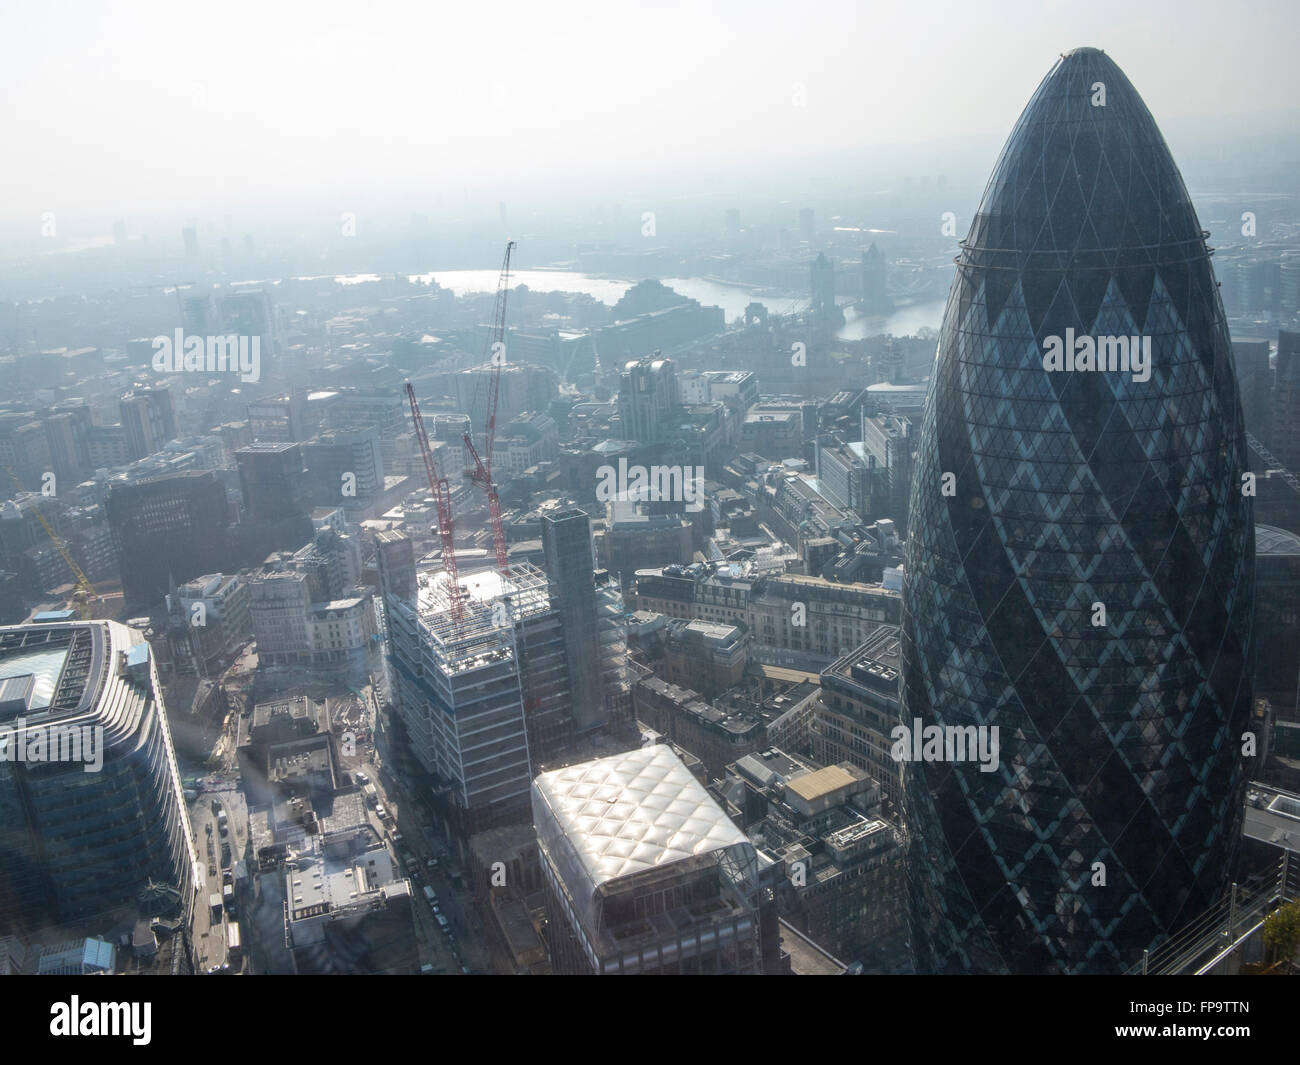 London: The Gherkin Swiss Re Building from above - Stock Image